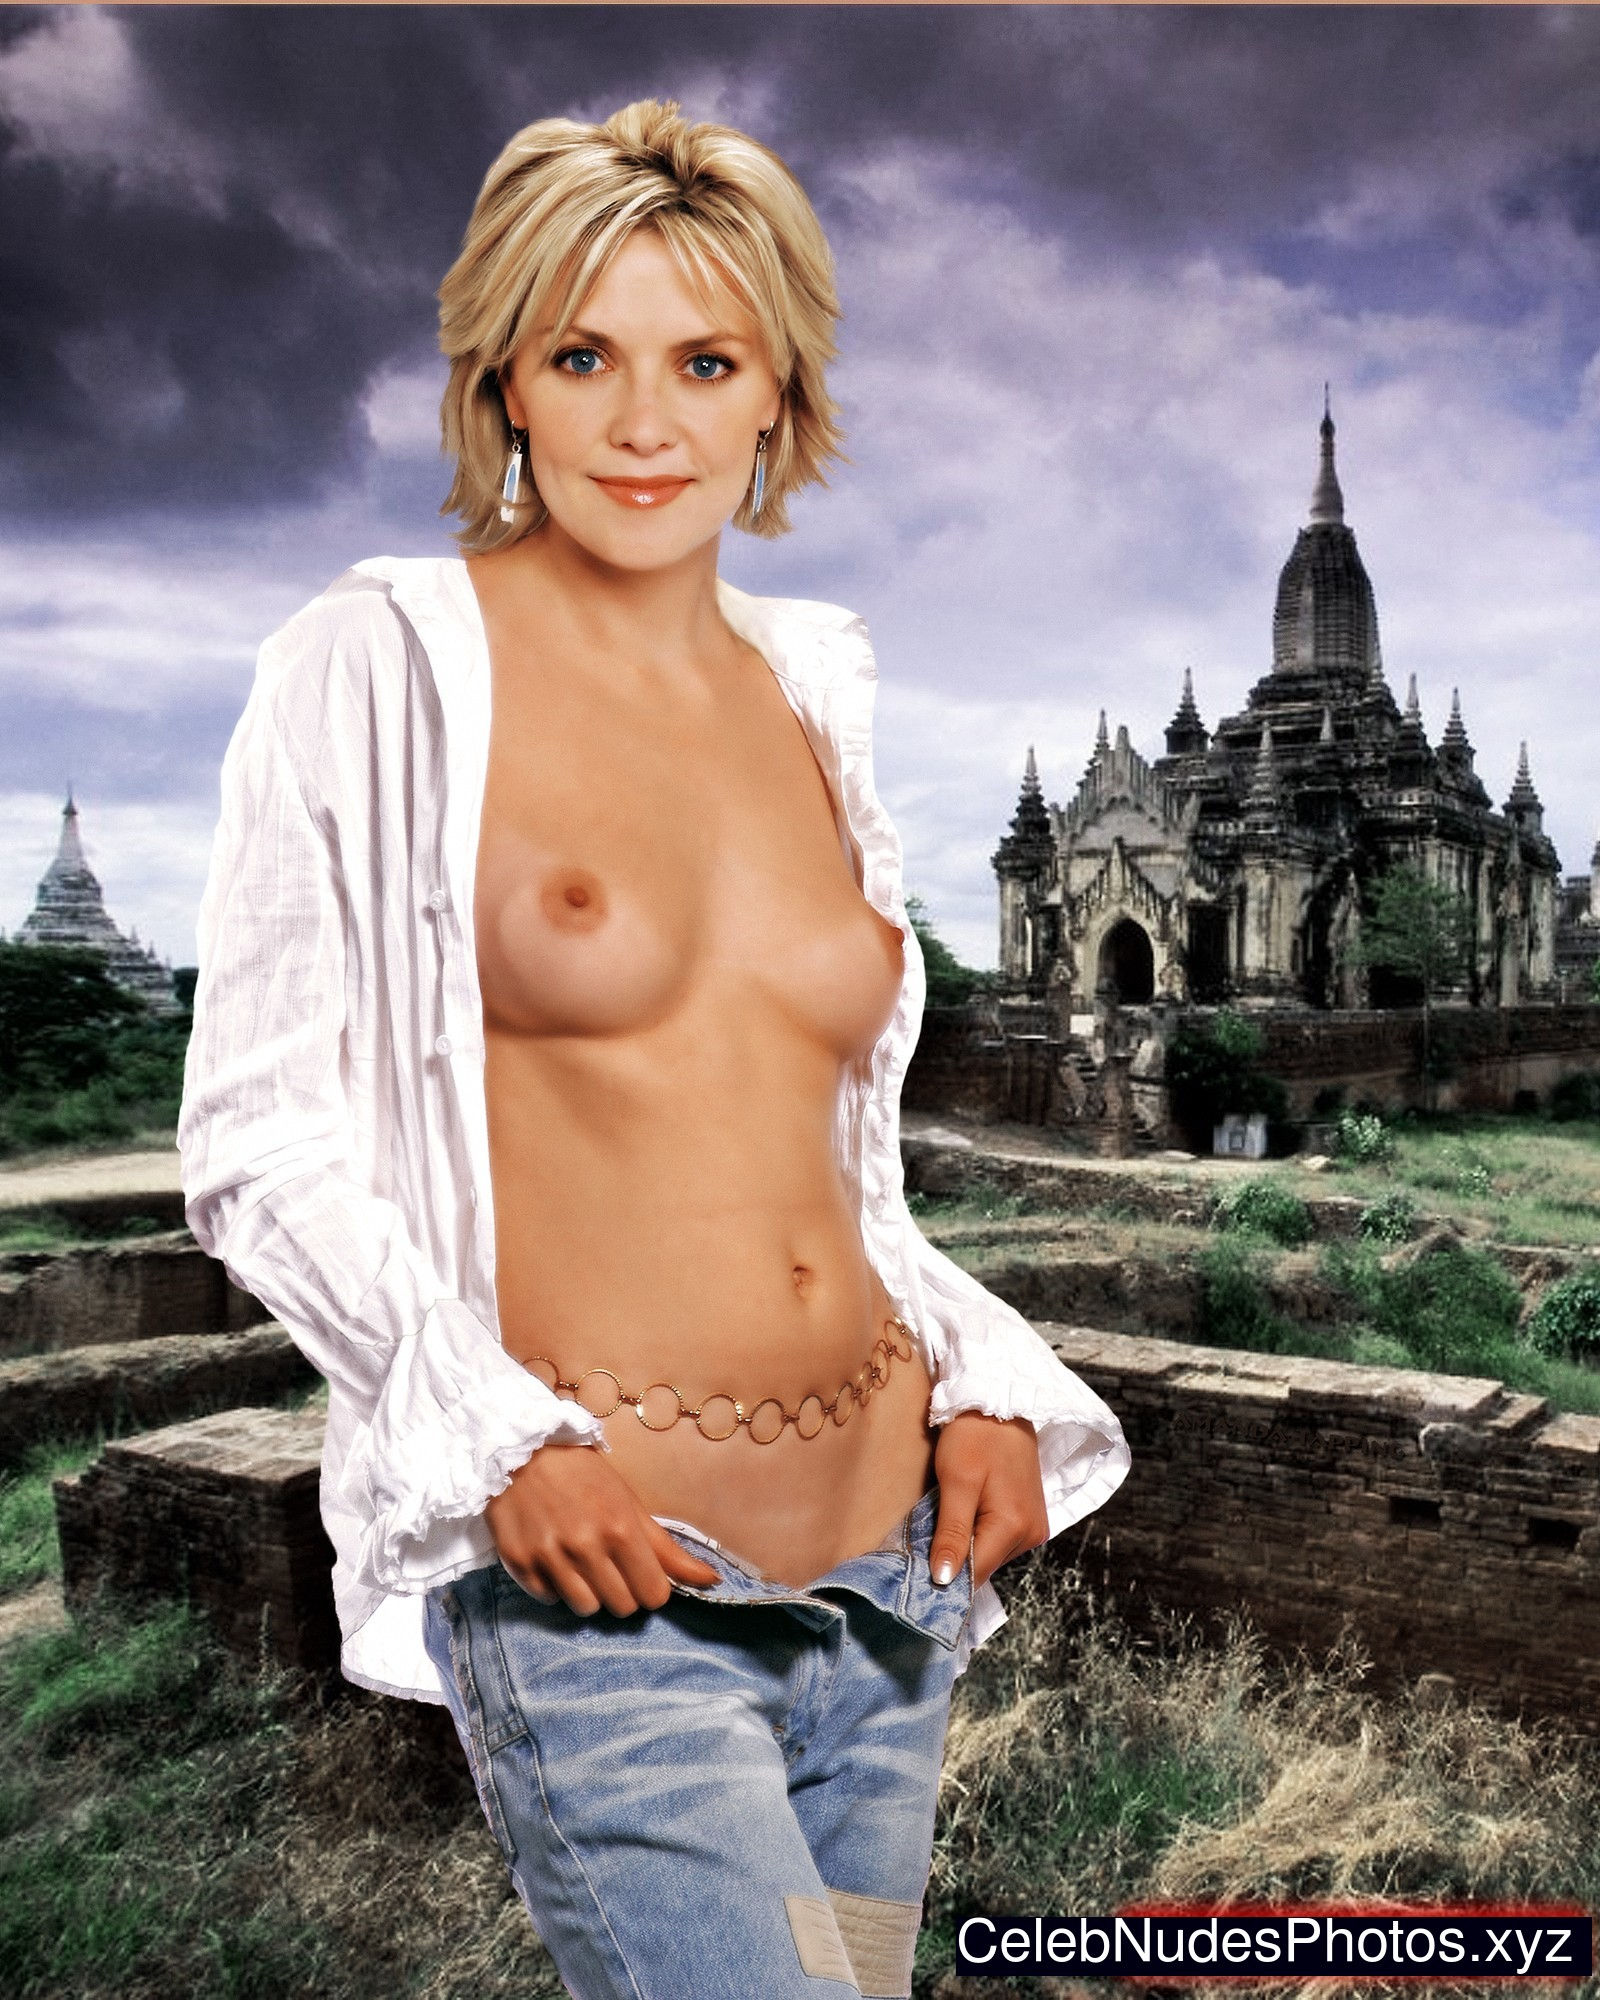 Amanda Tapping naked celebrity pictures